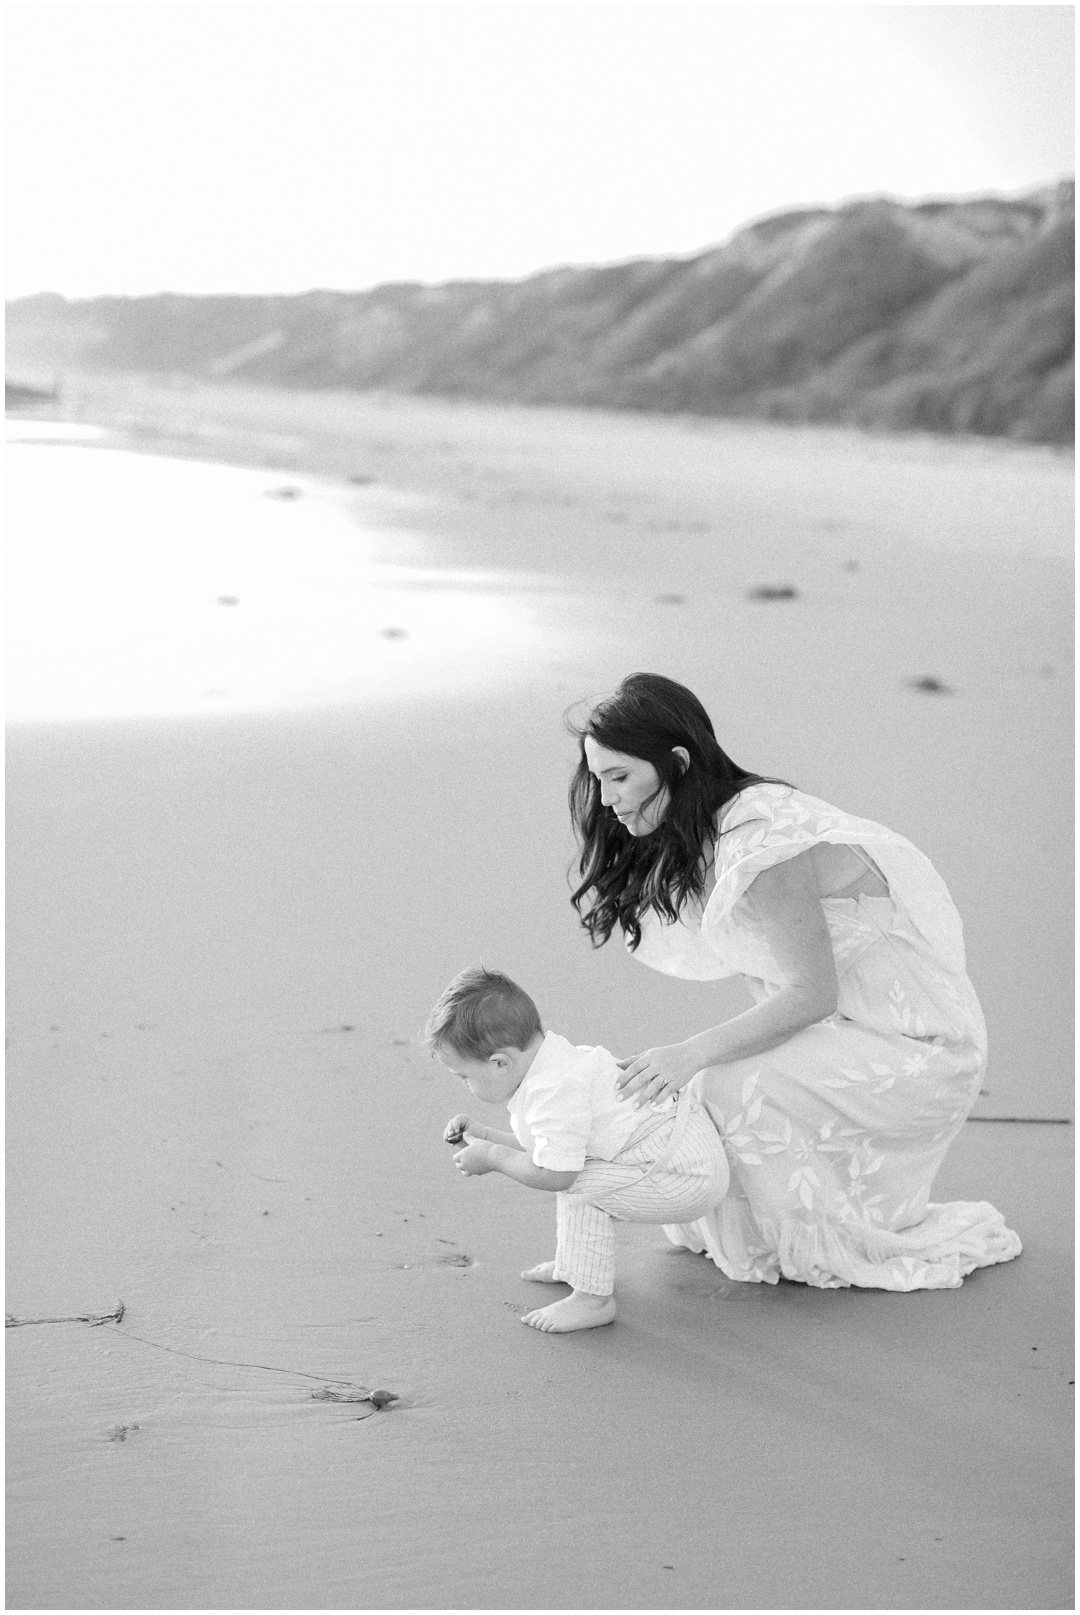 Newport_Beach_Newborn_Light_Airy_Natural_Photographer_Newport_Beach_Photographer_Orange_County_Family_Photographer_Cori_Kleckner_Photography_Huntington_Beach_Photographer_Family_OC_Newborn_Danielle_Lawley_Parker_Maternity_Family_Jordan_Lawley_3367.jpg